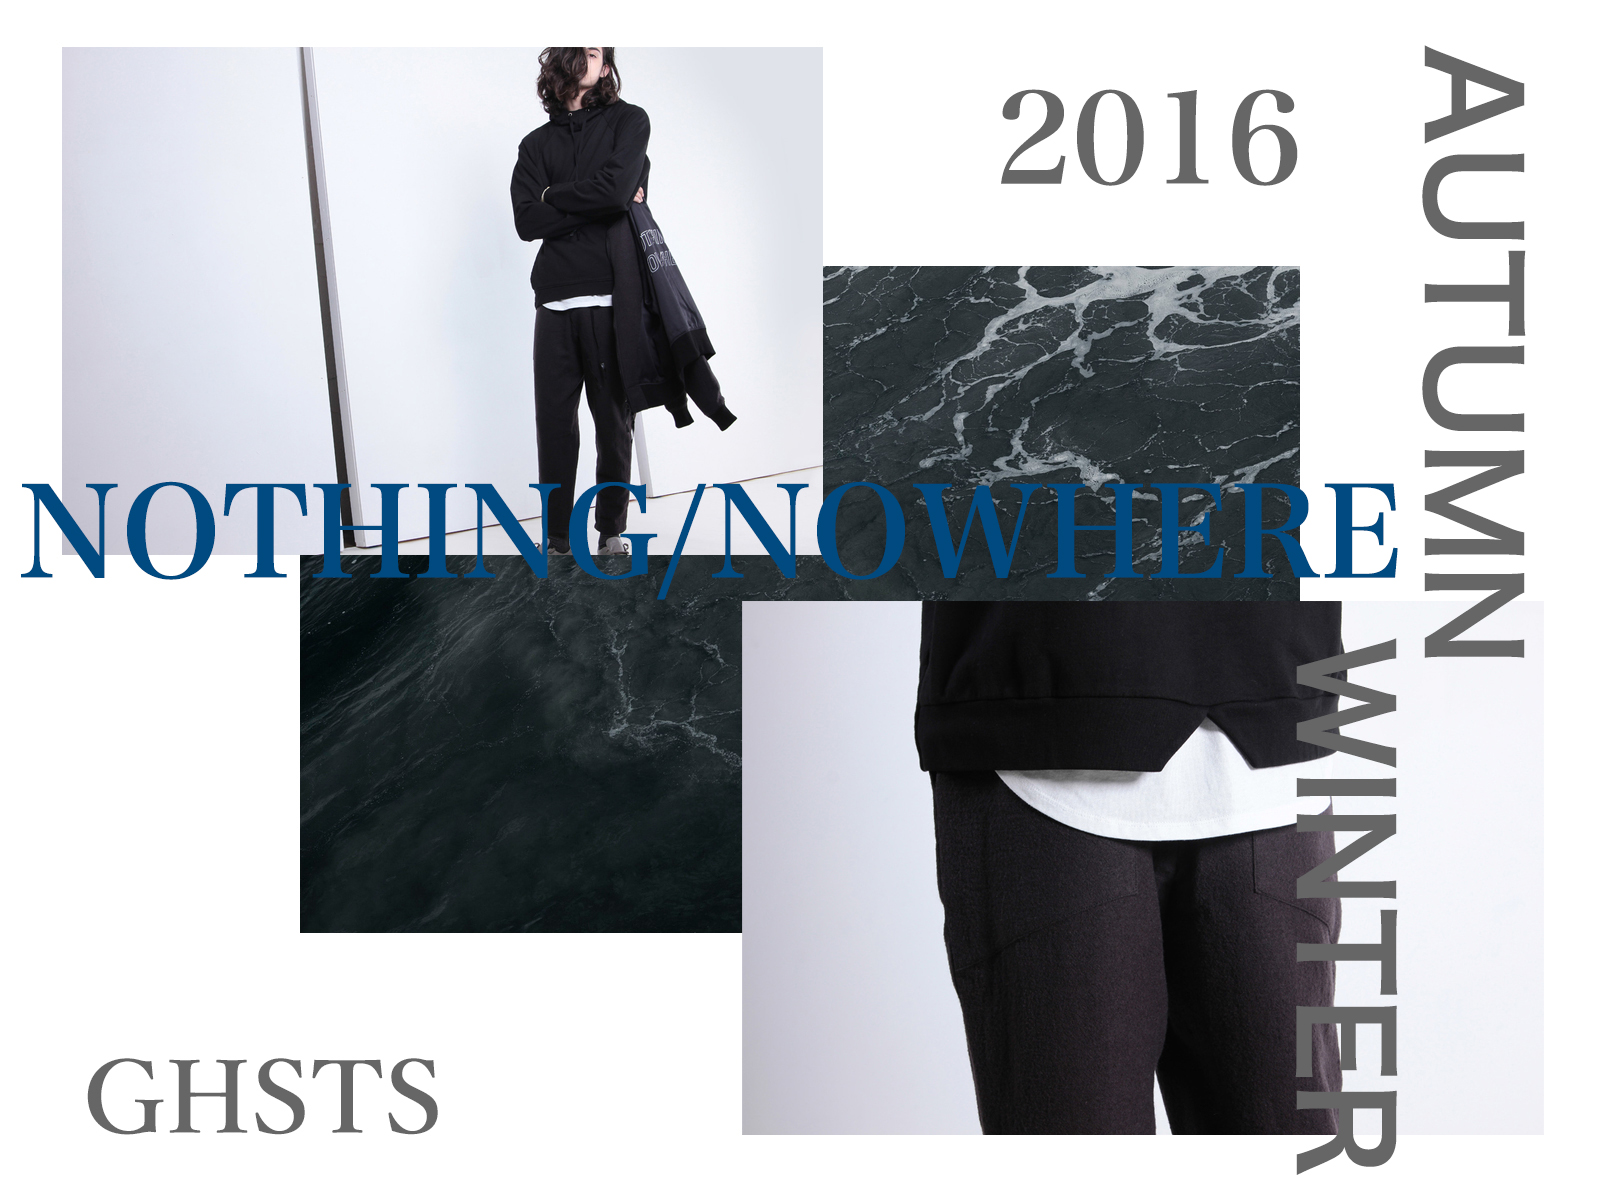 GHSTS: AUTUMN/WINTER 2016